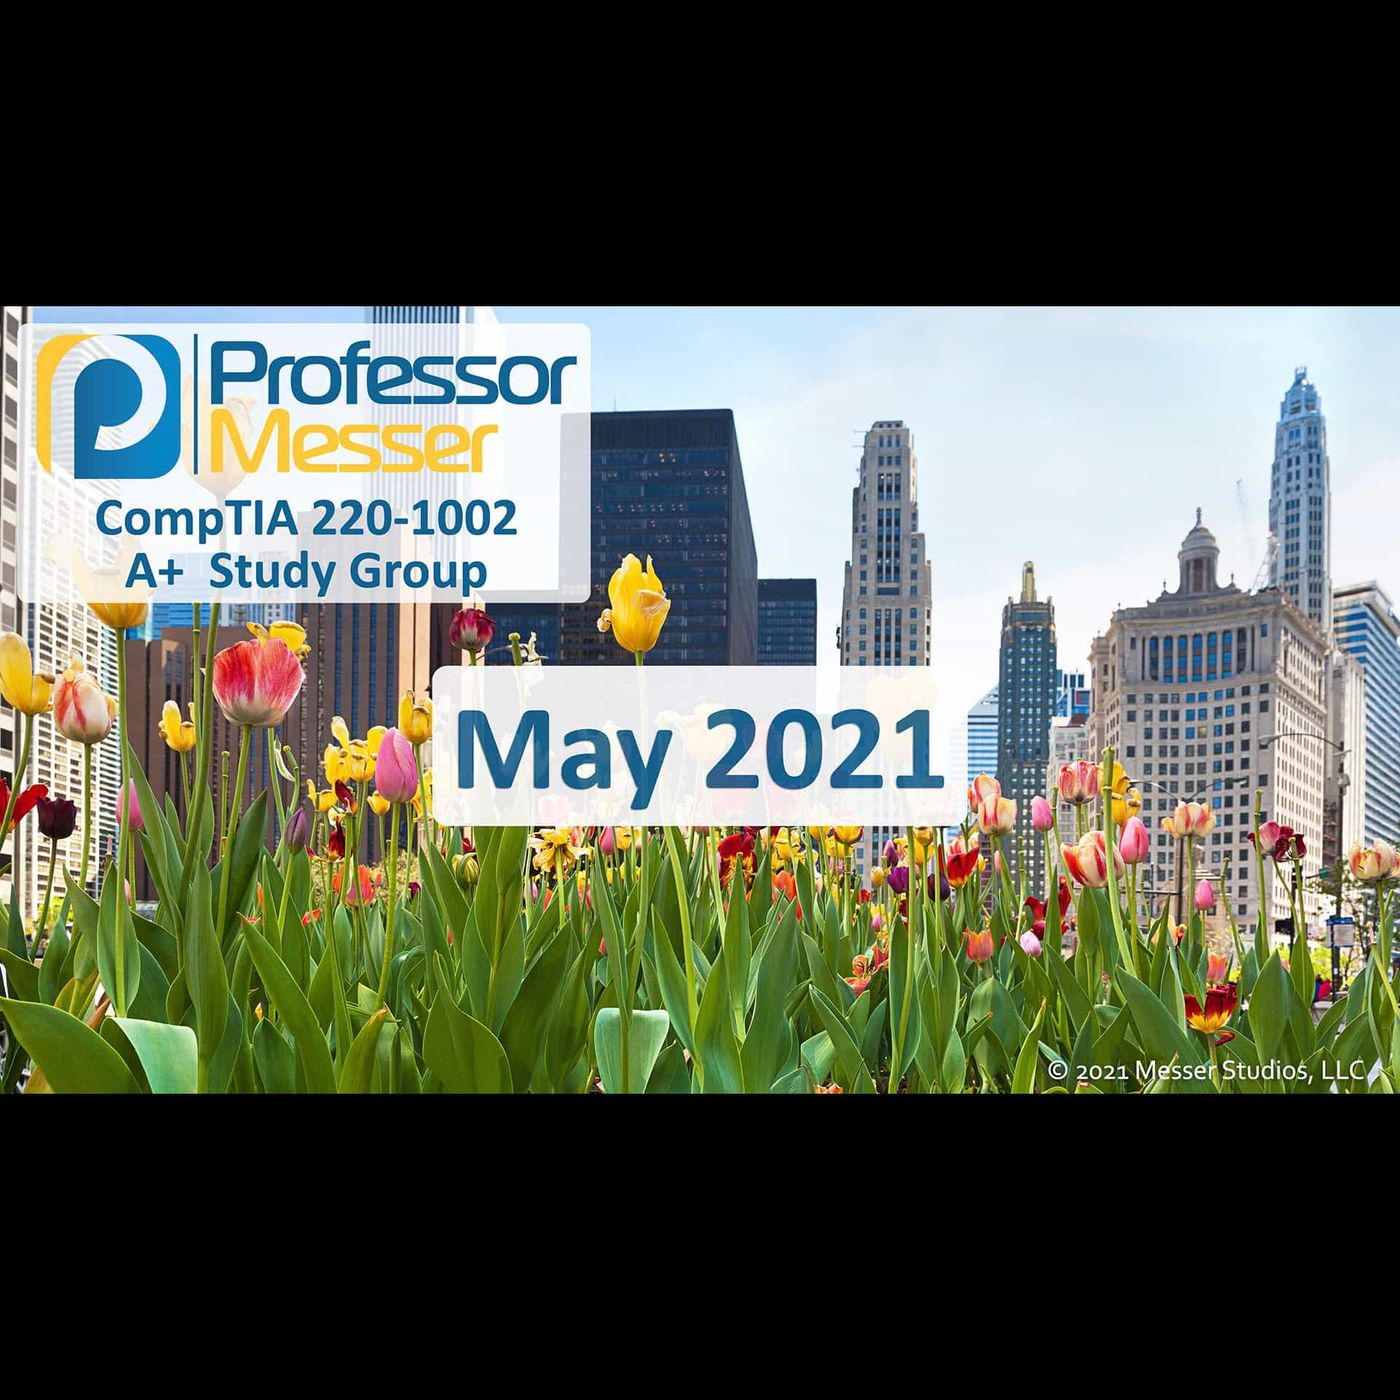 Professor Messer's CompTIA 220-1002 A+ Study Group After Show - May 2021